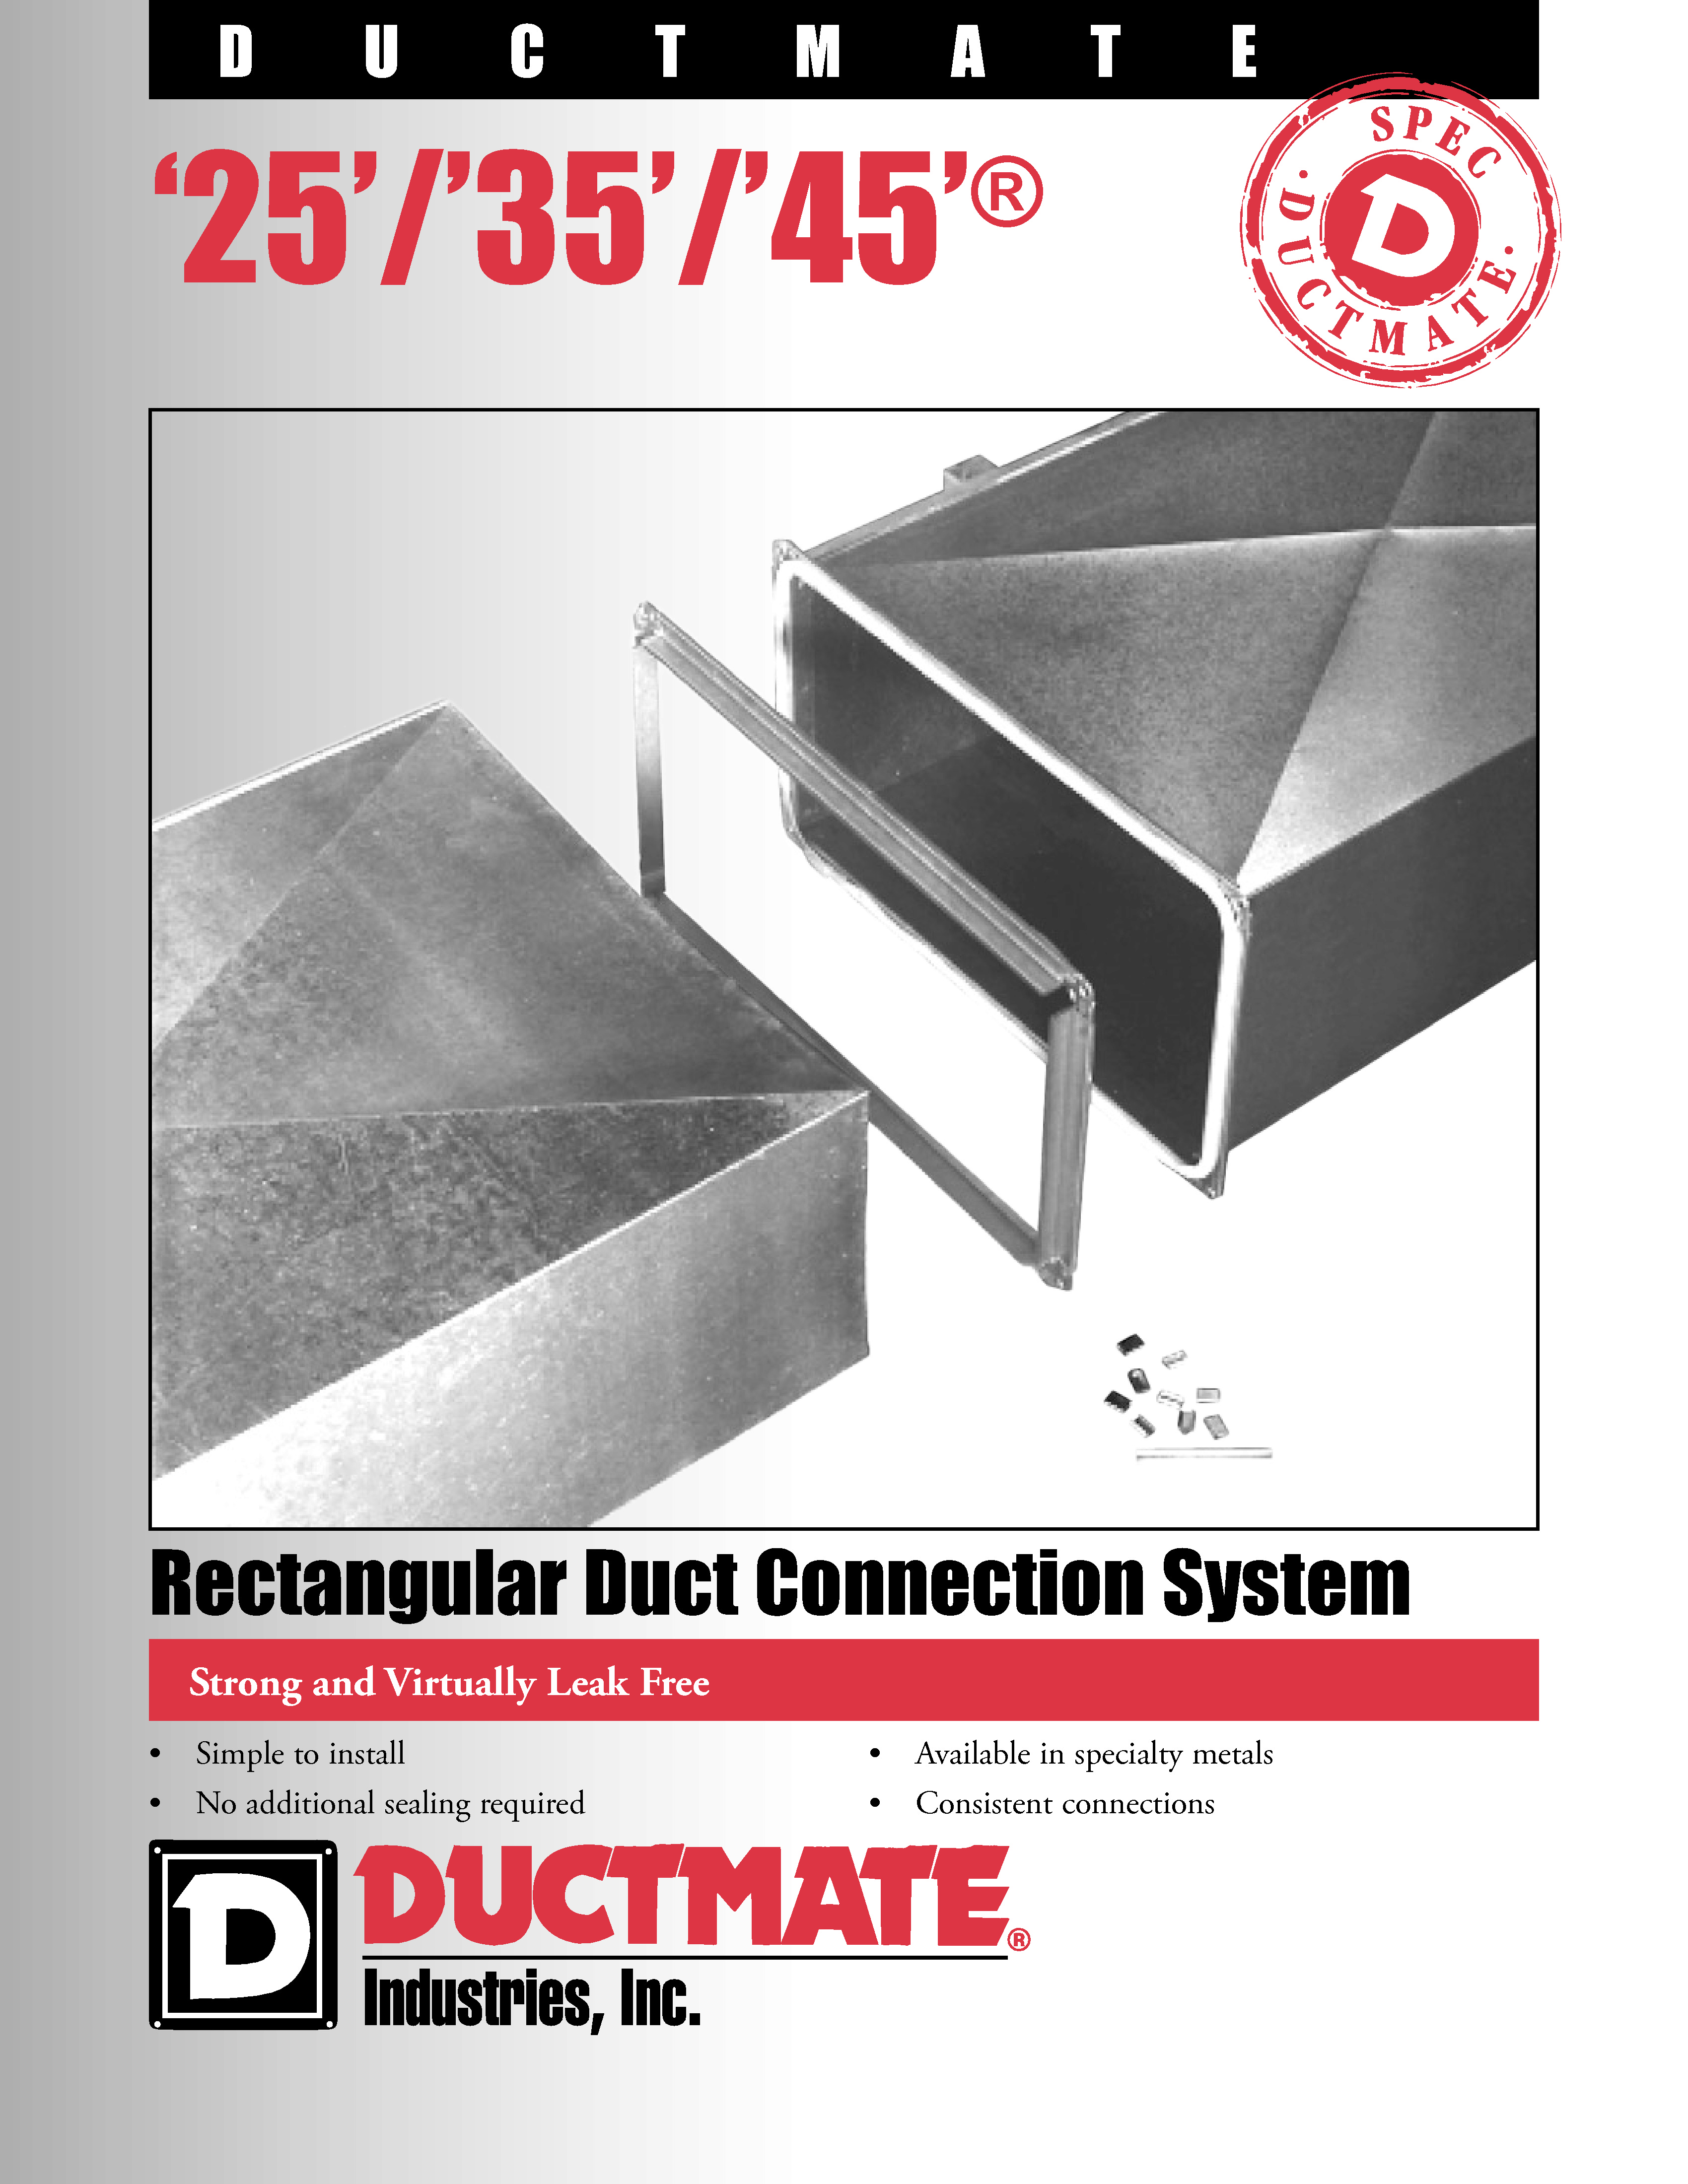 """• Simple to install • No additional sealing required • Available in specialty metals • Consistent connections Strong and Virtually Leak Free Rectangular Duct Connection System '25'/'35'/'45' ®  DUCTMATE  '25'/'35'/'45'®Rectangular Duct  Connection System DESCRIPTION Ductmate 25/35/45 connection systems consist of roll-formed flanges, corner pieces, gasket and cleat. The flanges attach to the duct wall and have an integral mastic which allows the flange to seal itself to the duct. Corner pieces are used to add rigidity to the flange; hold the ductwork together and provide a sealing surface for the gasket. The gasket serves as a seal between the flanges. The cleat insures even compression of the gasket along the length of the flange. BASIC USE Ductmate 25/35/45 are used to connect rectangular ducts when a rigid, leak-free connection is required. SPECIAL CHARACTERISTICS • Patented downset in corner insures proper sealing (excludes Ductmate '45') • Patented corner clips ease installation (excludes Ductmate '45') • Sealing materials meet NFPA 90A & B Class 1 requirements • The Ductmate '45' system is not recommended for applications with duct gauges heavier than 10 or lighter than 22. • The Ductmate '35' system is not recommended for applications with duct gauges heavier than 16 GA, or lighter than 26 GA. • The Ductmate '25' is not recommended for applications with duct gauges heavier than 20 GA or lighter than 26 GA. TECHNICAL INFORMATION Ductmate '45' was tested in accordance with SMACNA testing procedures. No external sealant was employed and the test results reveal: the Ductmate '45' system is comparable to a SMACNA Class K transverse joint; the Ductmate '35' system is comparable to the SMACNA Class """"J"""" transverse joint and the Ductmate '25' system is comparable to the SMACNA Class """"F"""" joint. Ductmate '35' in stainless steel exhibits the same performance as galvanized. Aluminum DM35 is comparable to a SMACNA H connection. DM25 is not available in aluminum or stainles"""